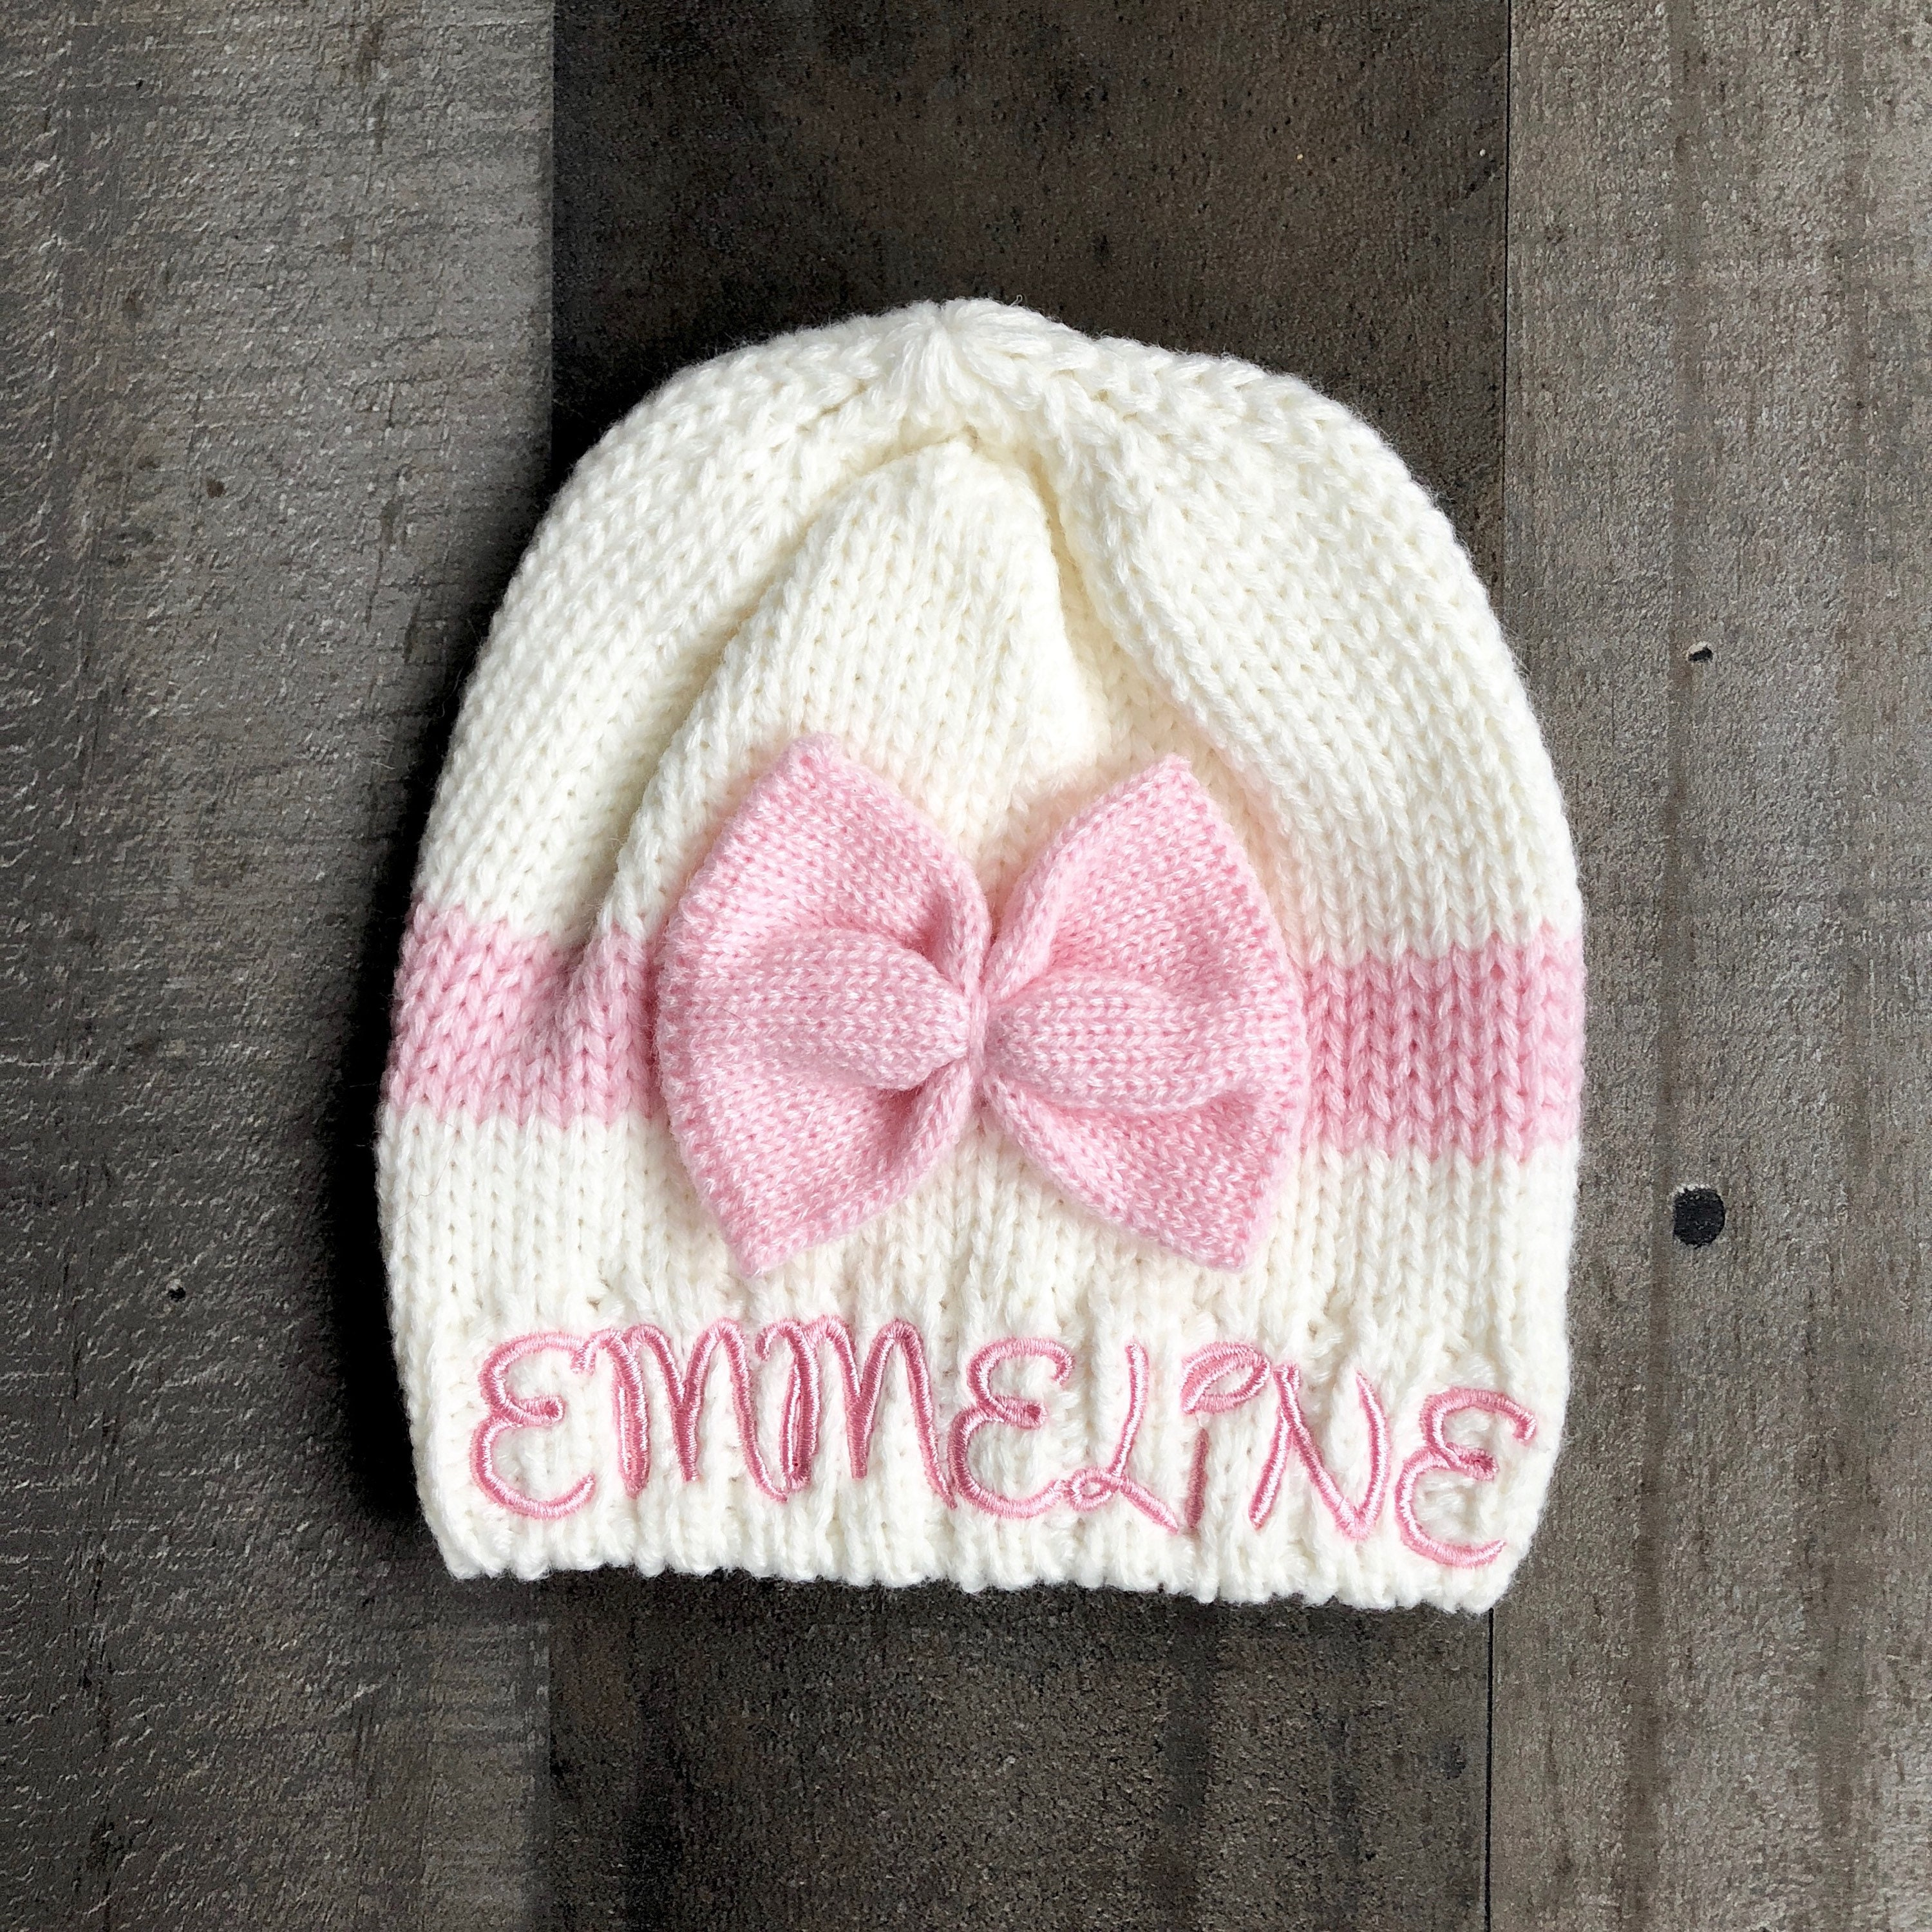 cc2b01e7 Bow Knitted Embroidered Baby Girls Beanie Hat available in 6 colors. 1